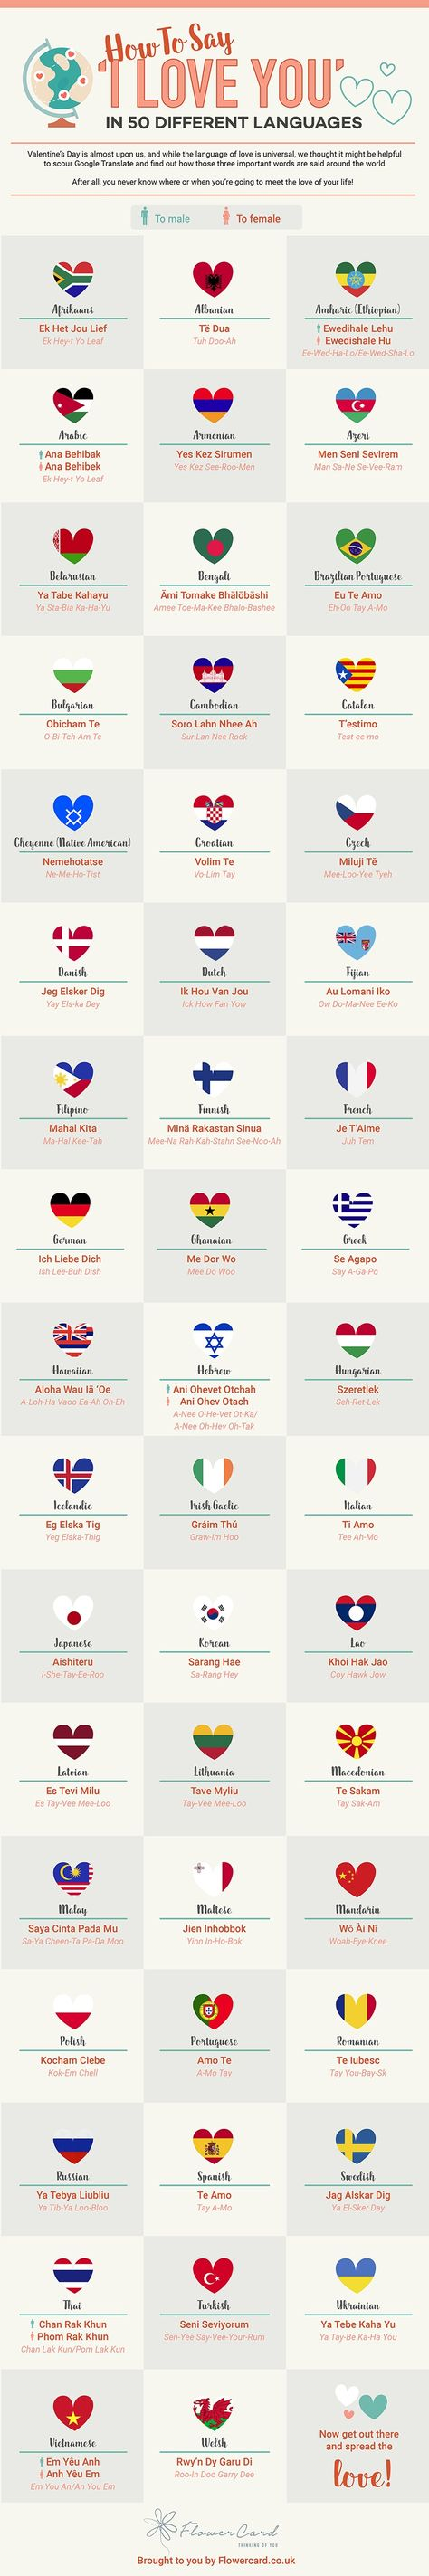 Say hello in 50 different languages infographic writing say hello in 50 different languages infographic writing pinterest infographic language and 50th buycottarizona Image collections